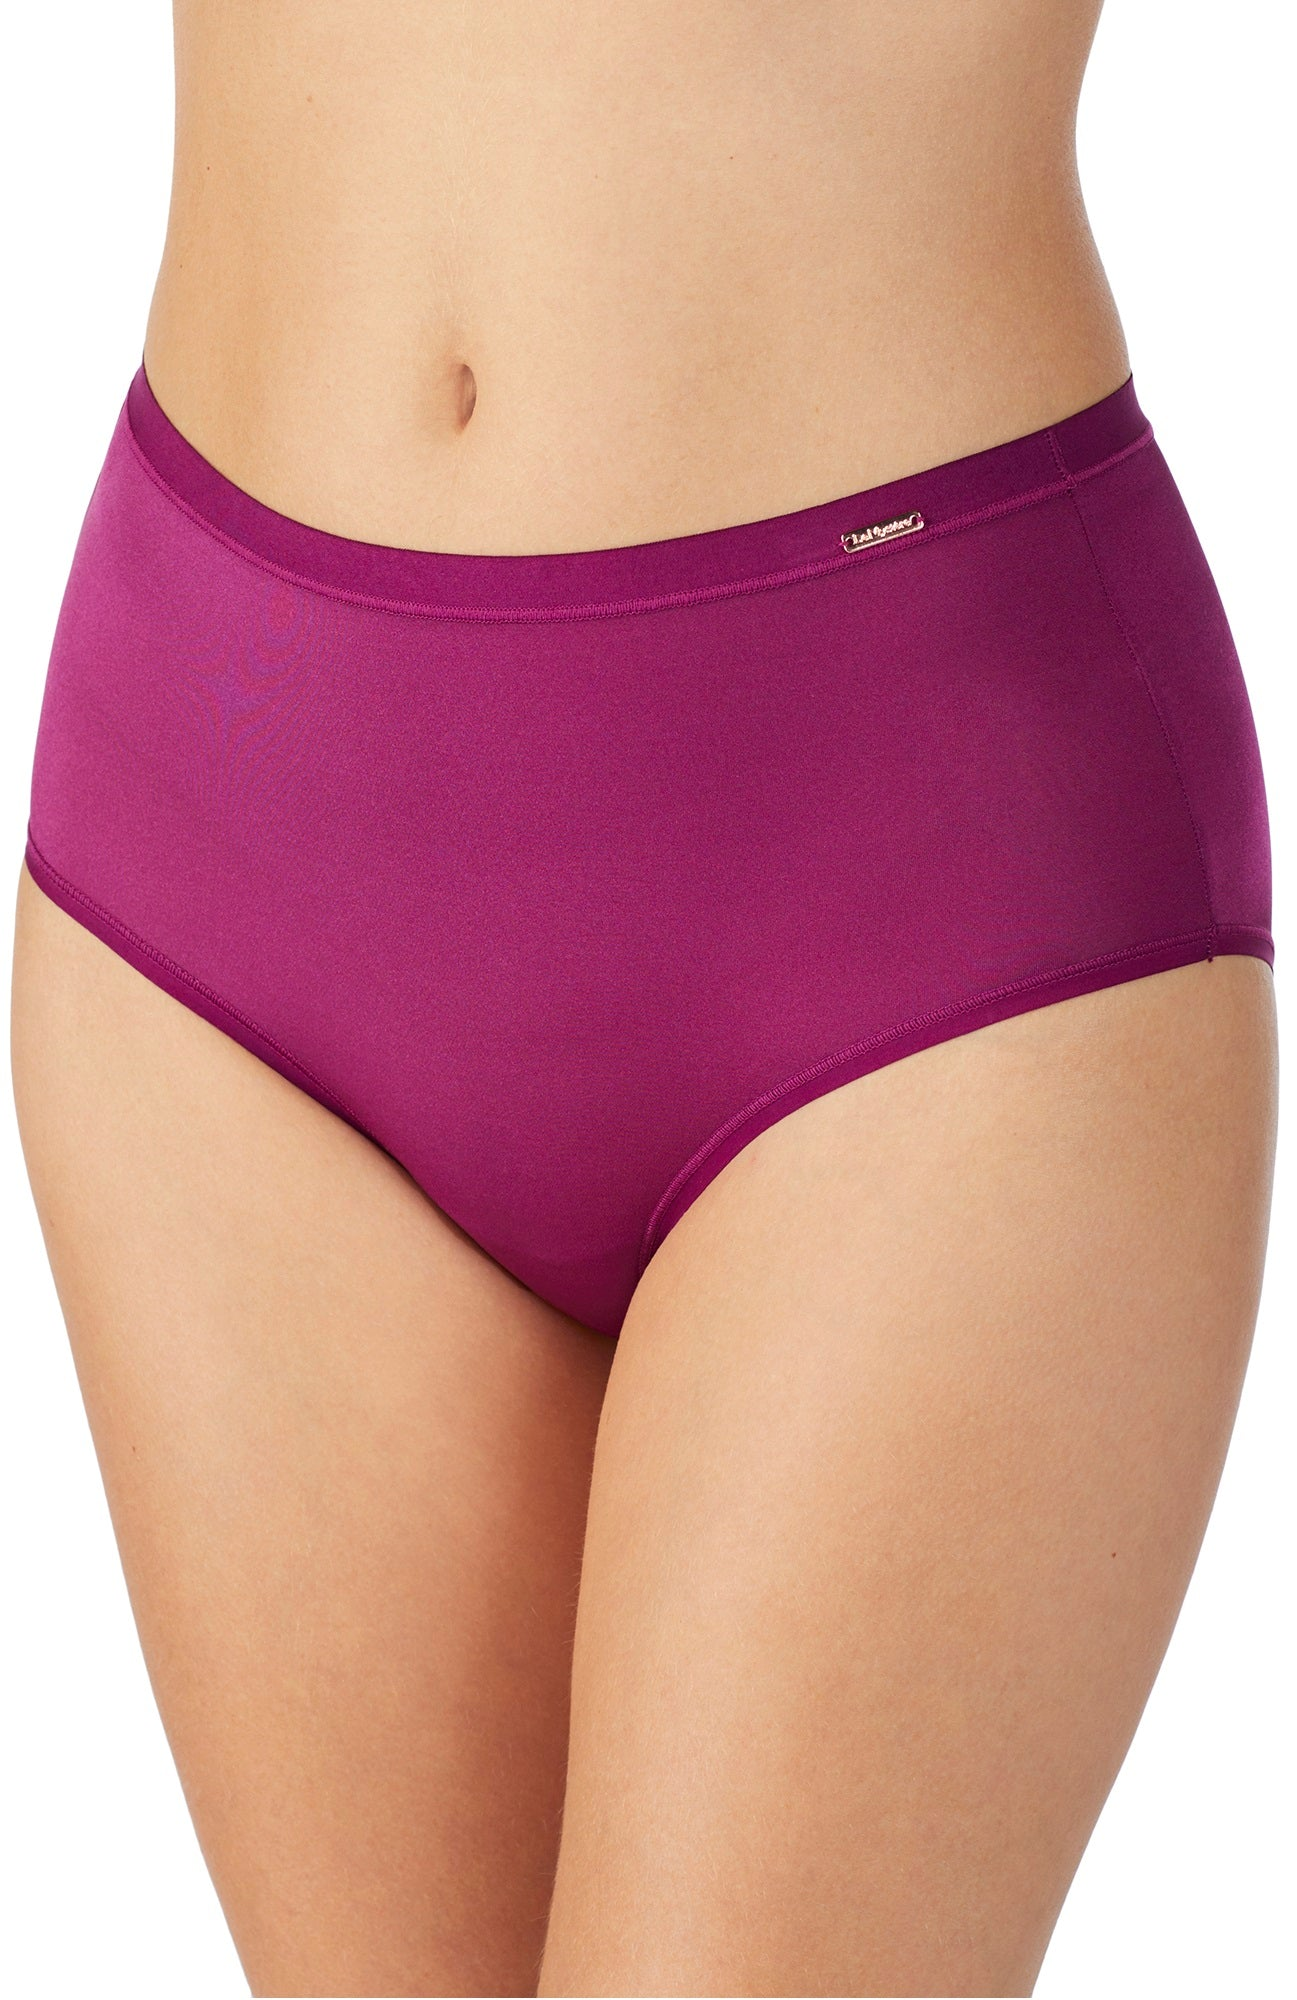 Infinite Comfort Brief - Magenta Glow